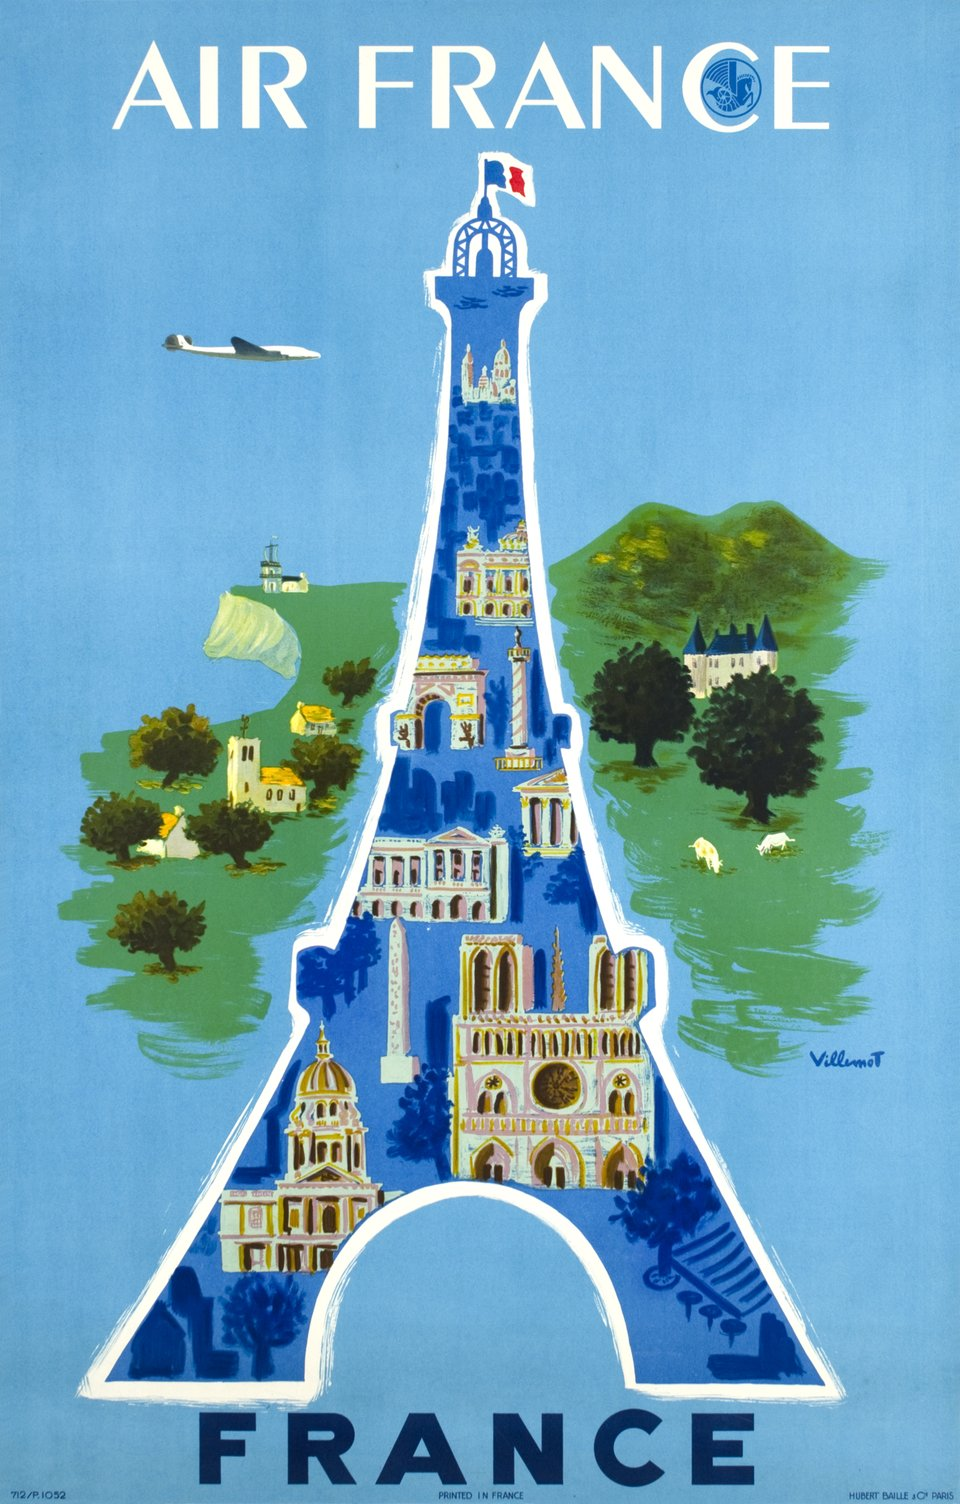 Air France, France – Affiche ancienne – Bernard VILLEMOT – 1952